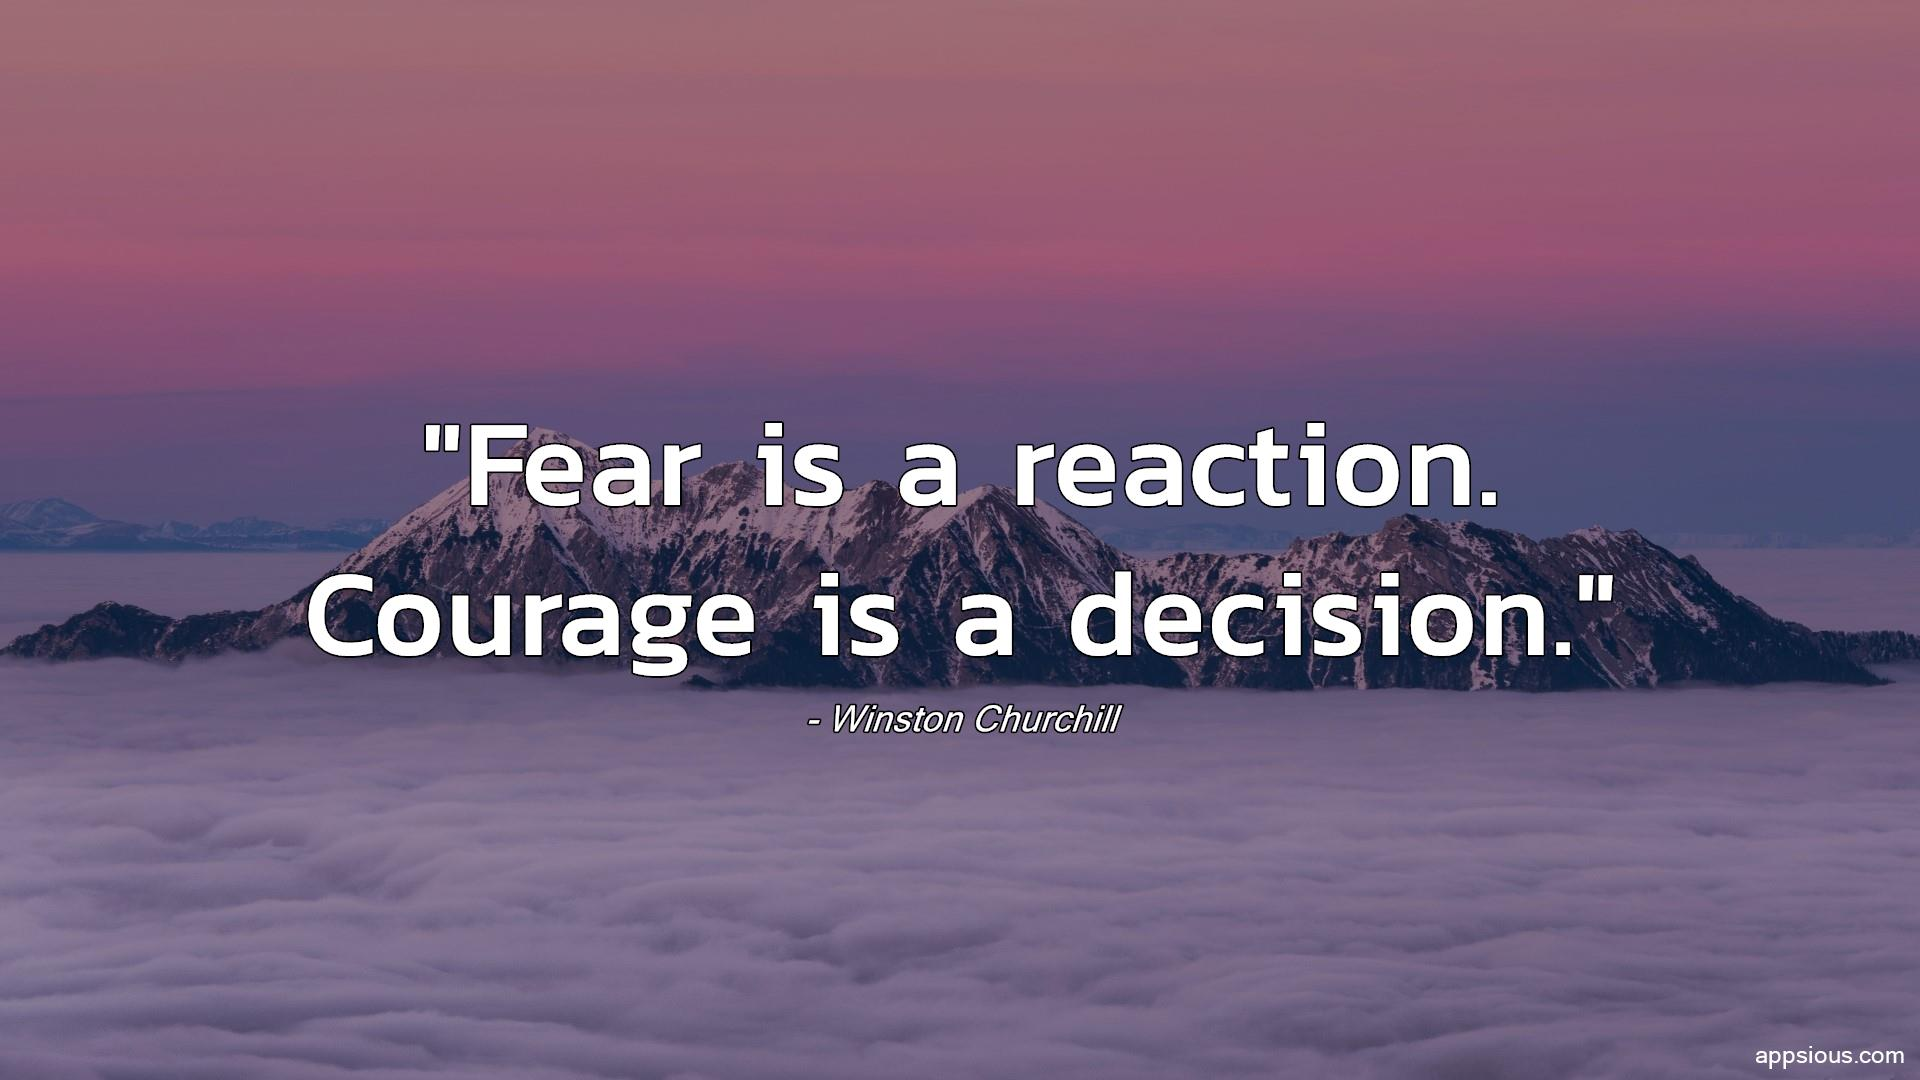 Fear is a reaction. Courage is a decision.